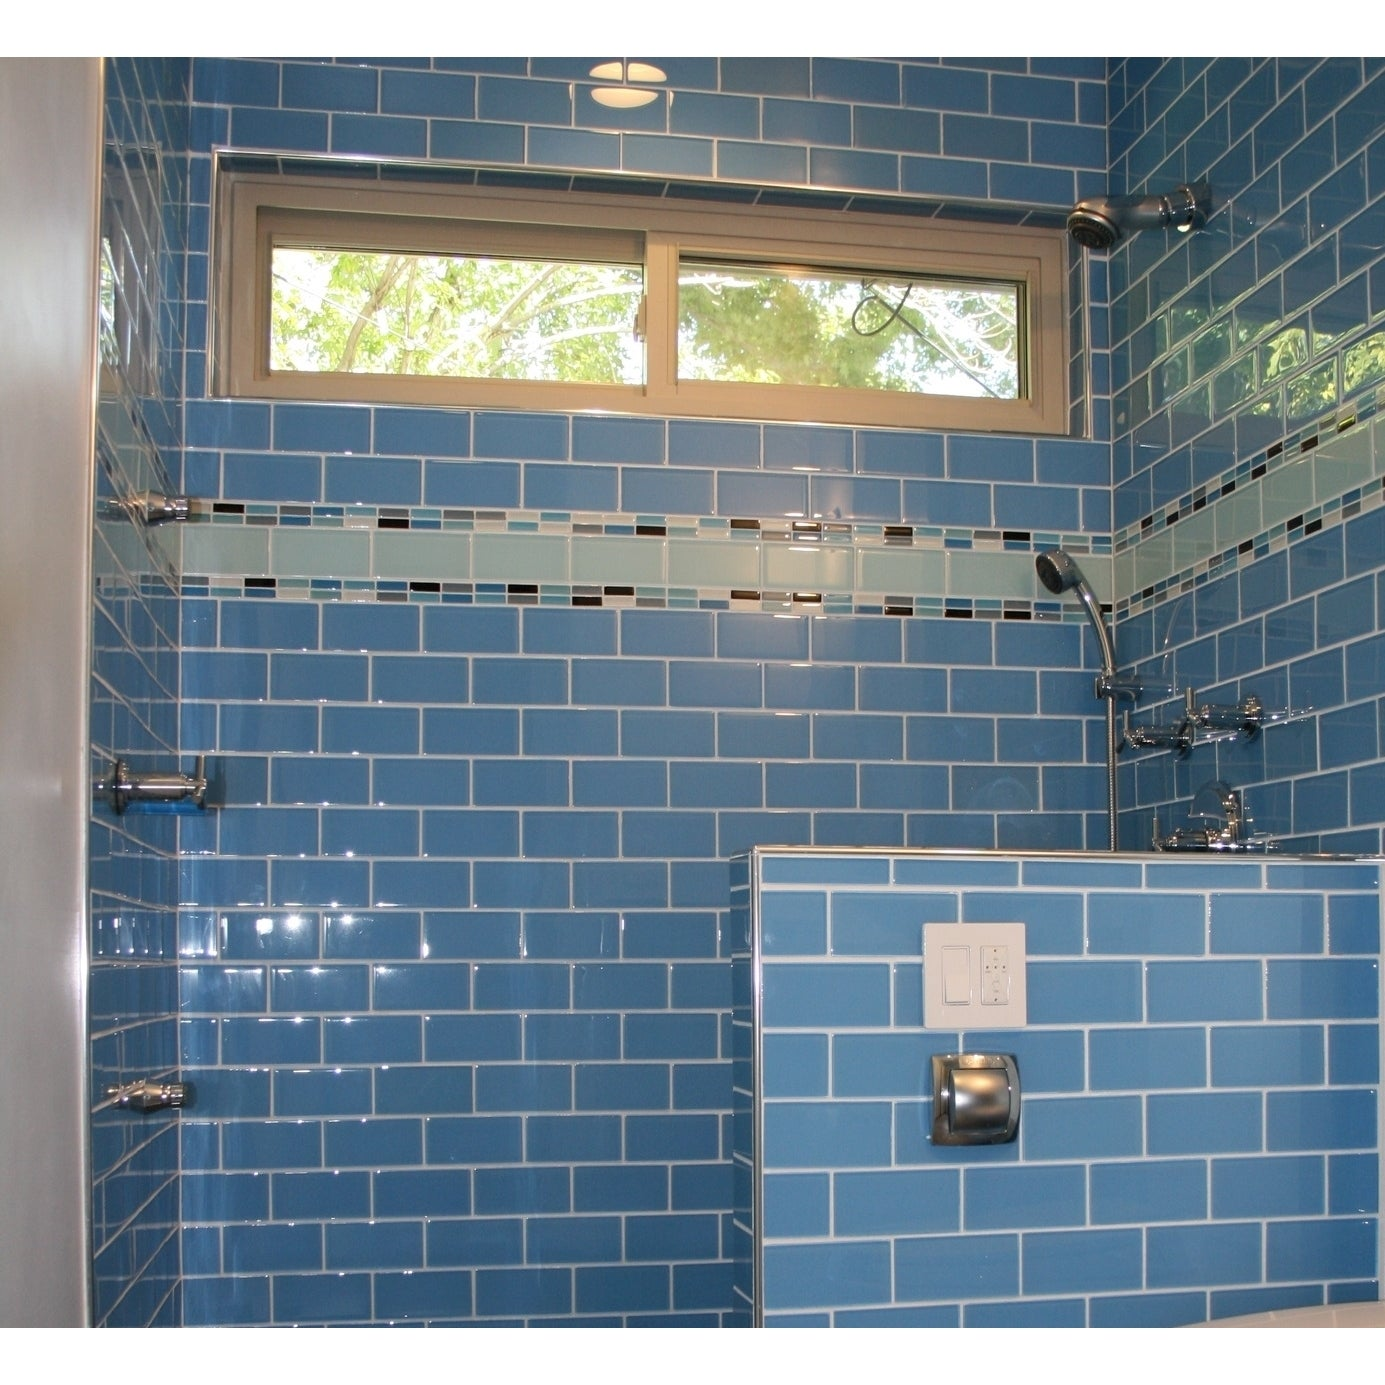 Lush Periwinkle Blue 3x6 Lush Glass Subway Tile - Free Shipping ...